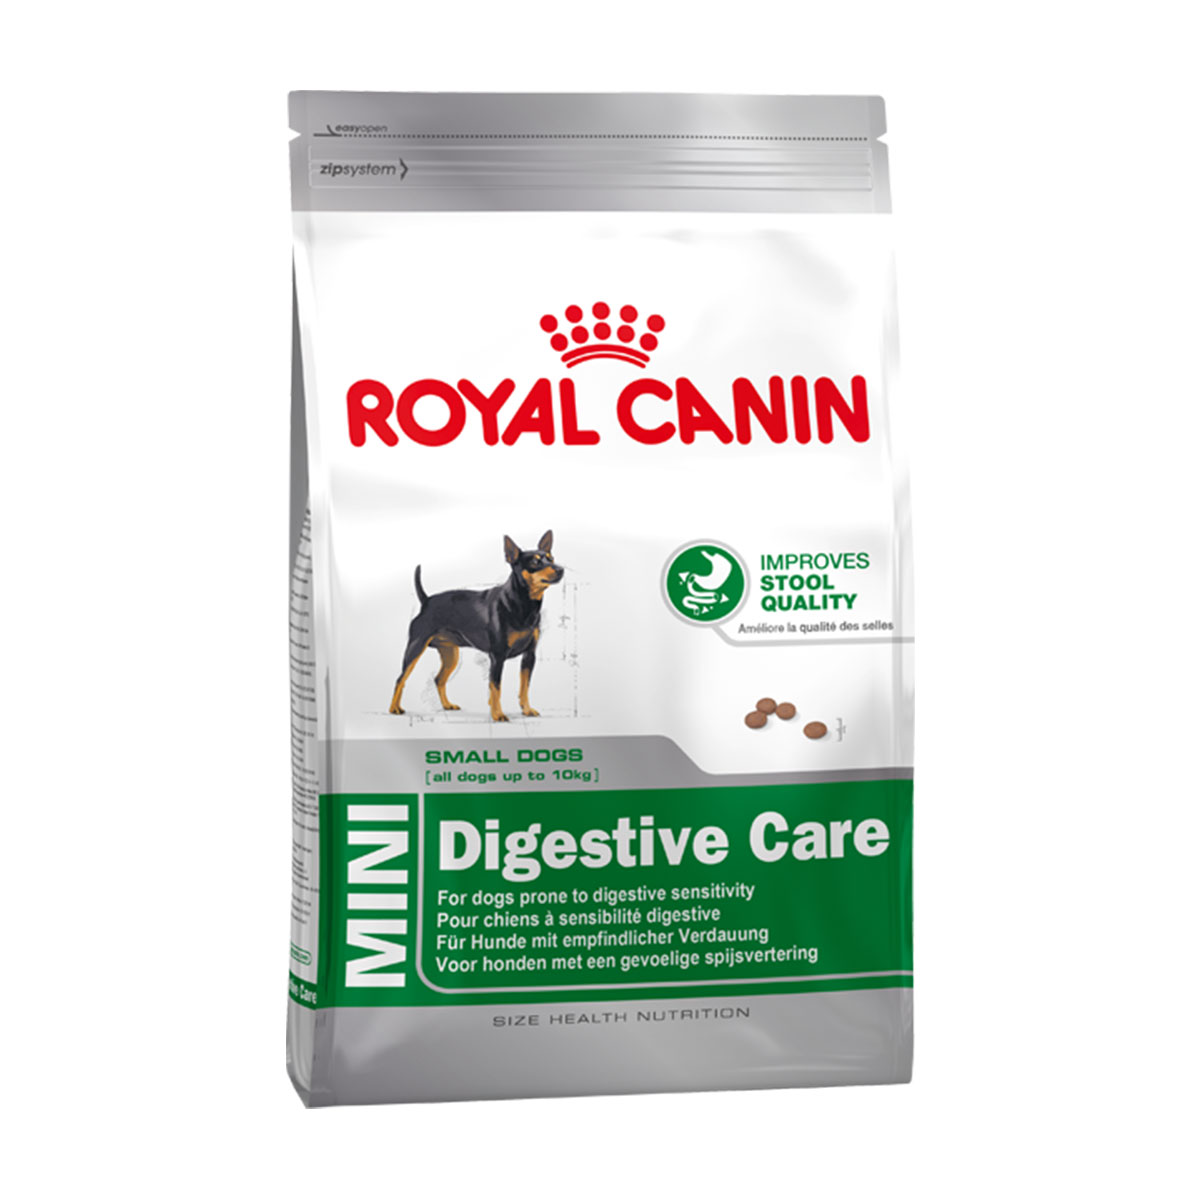 royal canin hundefutter mini digestive care kaufen bei zooroyal. Black Bedroom Furniture Sets. Home Design Ideas